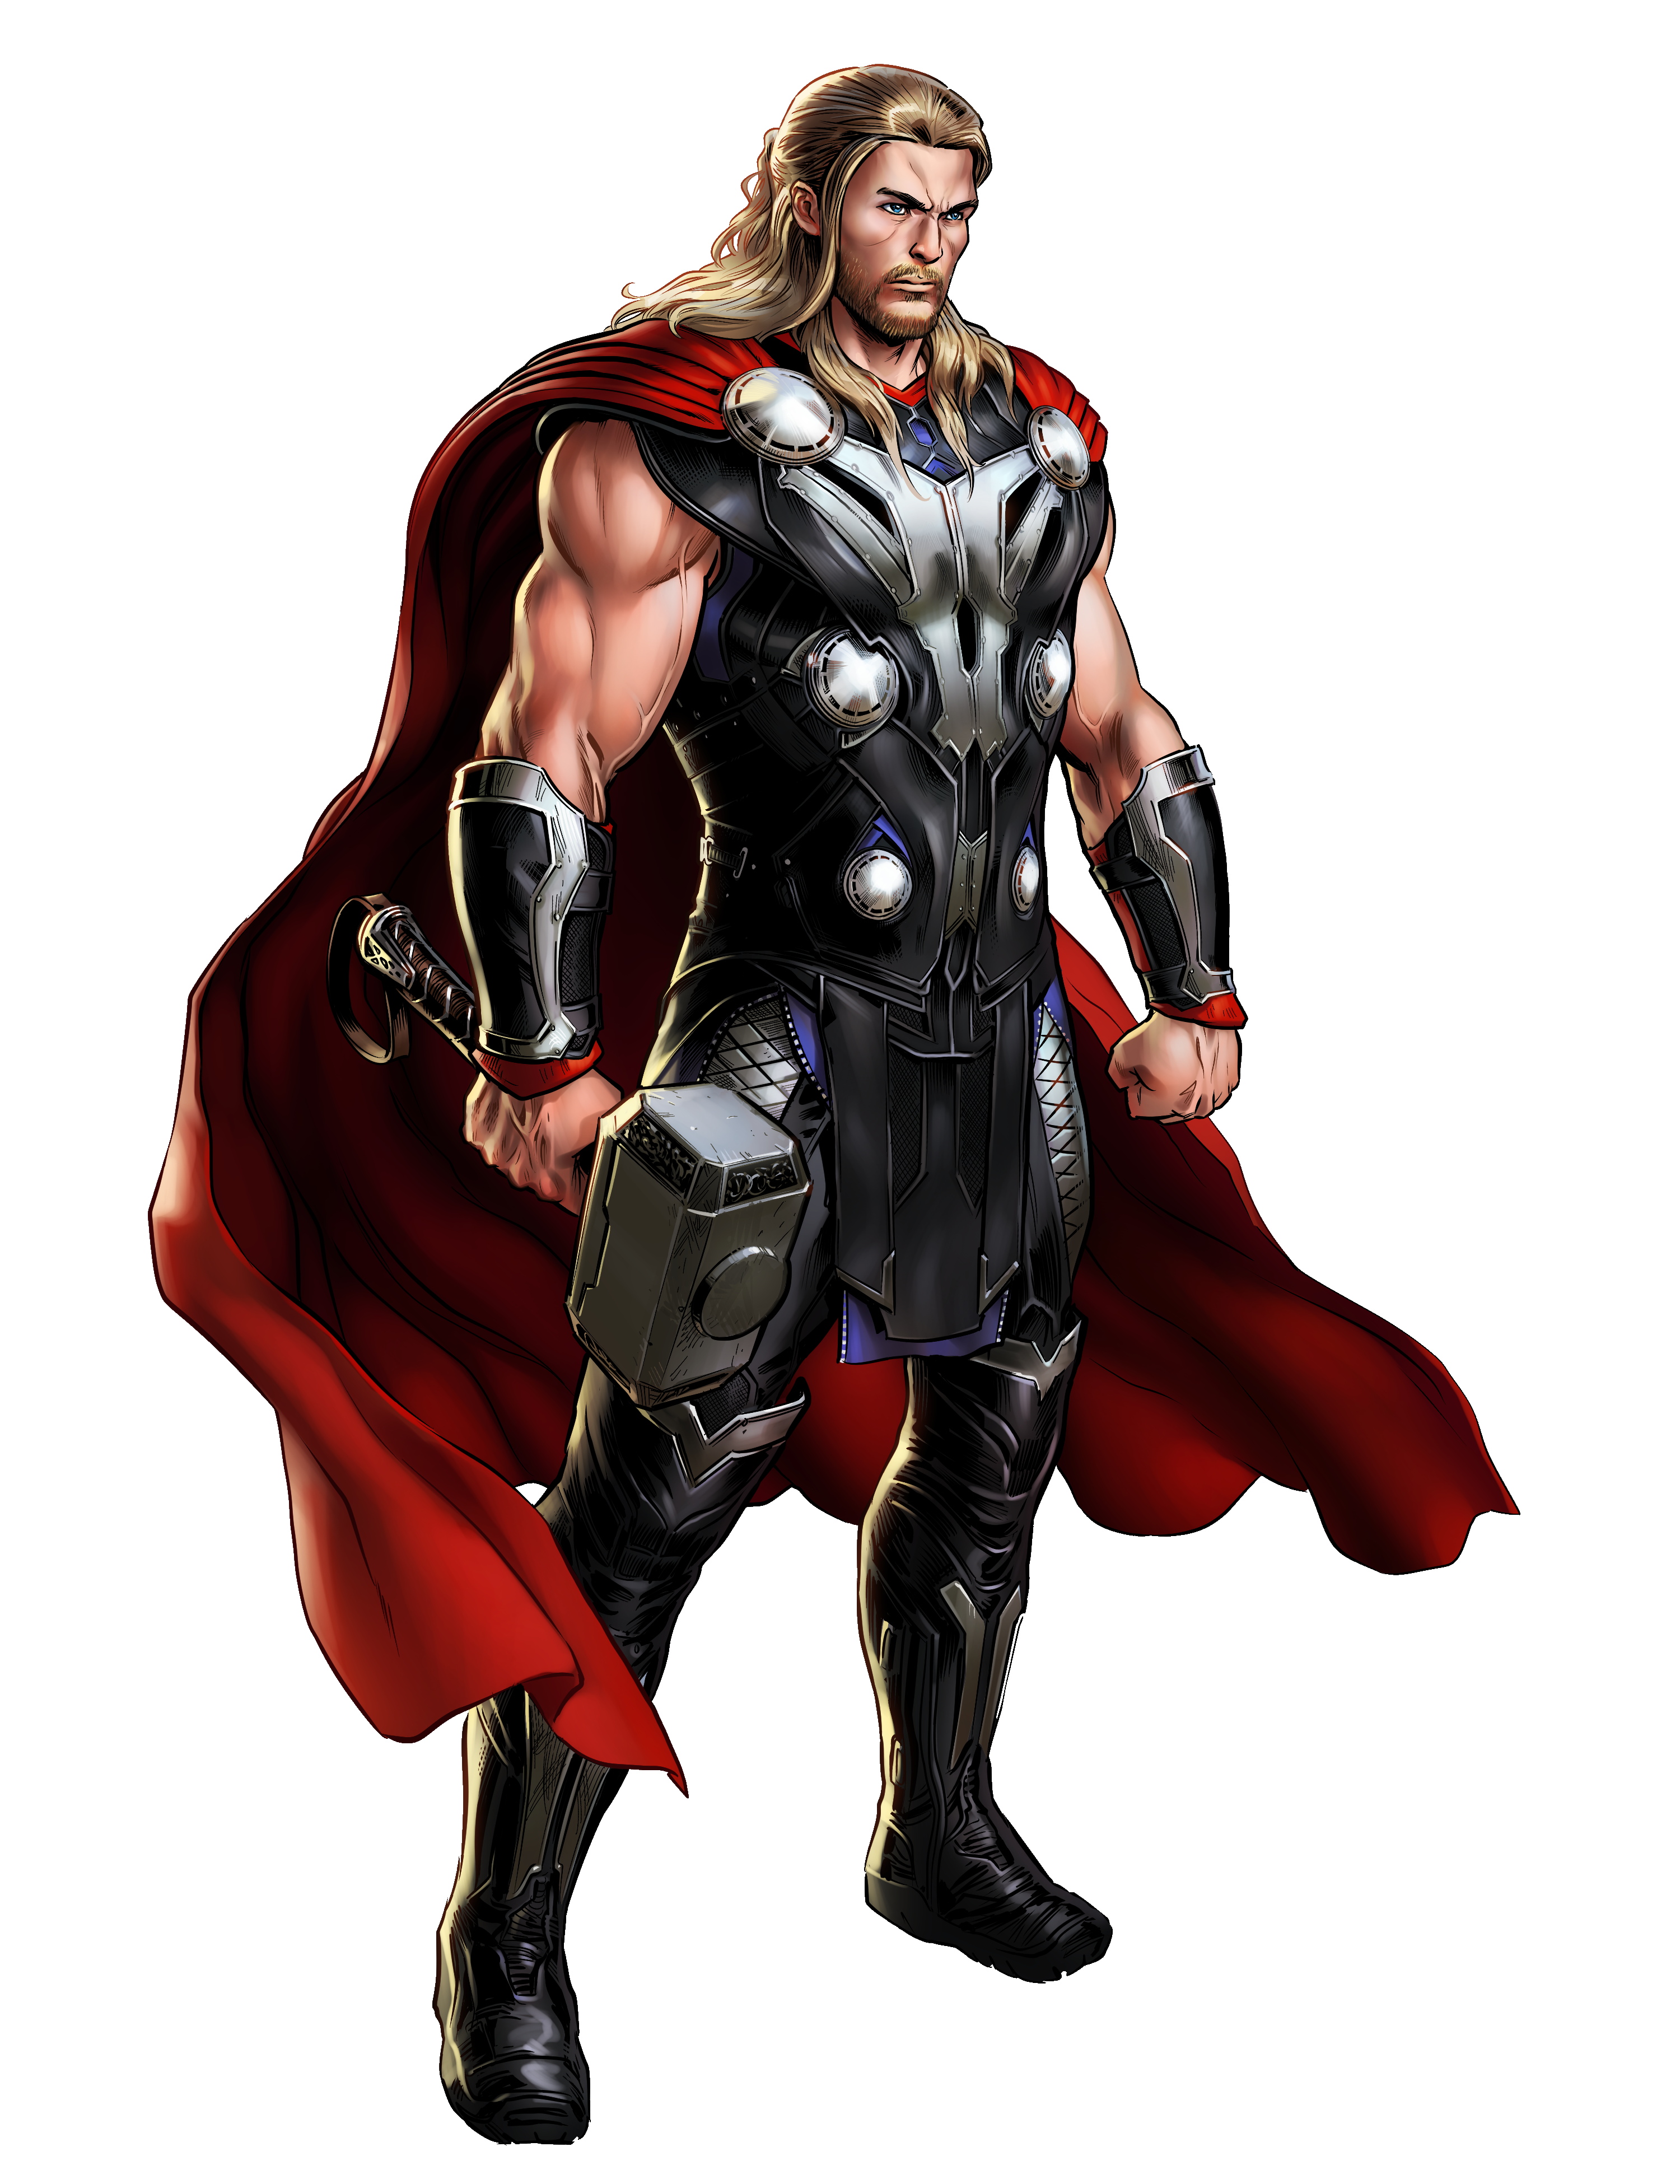 marvel avengers alliance 2 thor by steeven7620 on deviantart. Black Bedroom Furniture Sets. Home Design Ideas